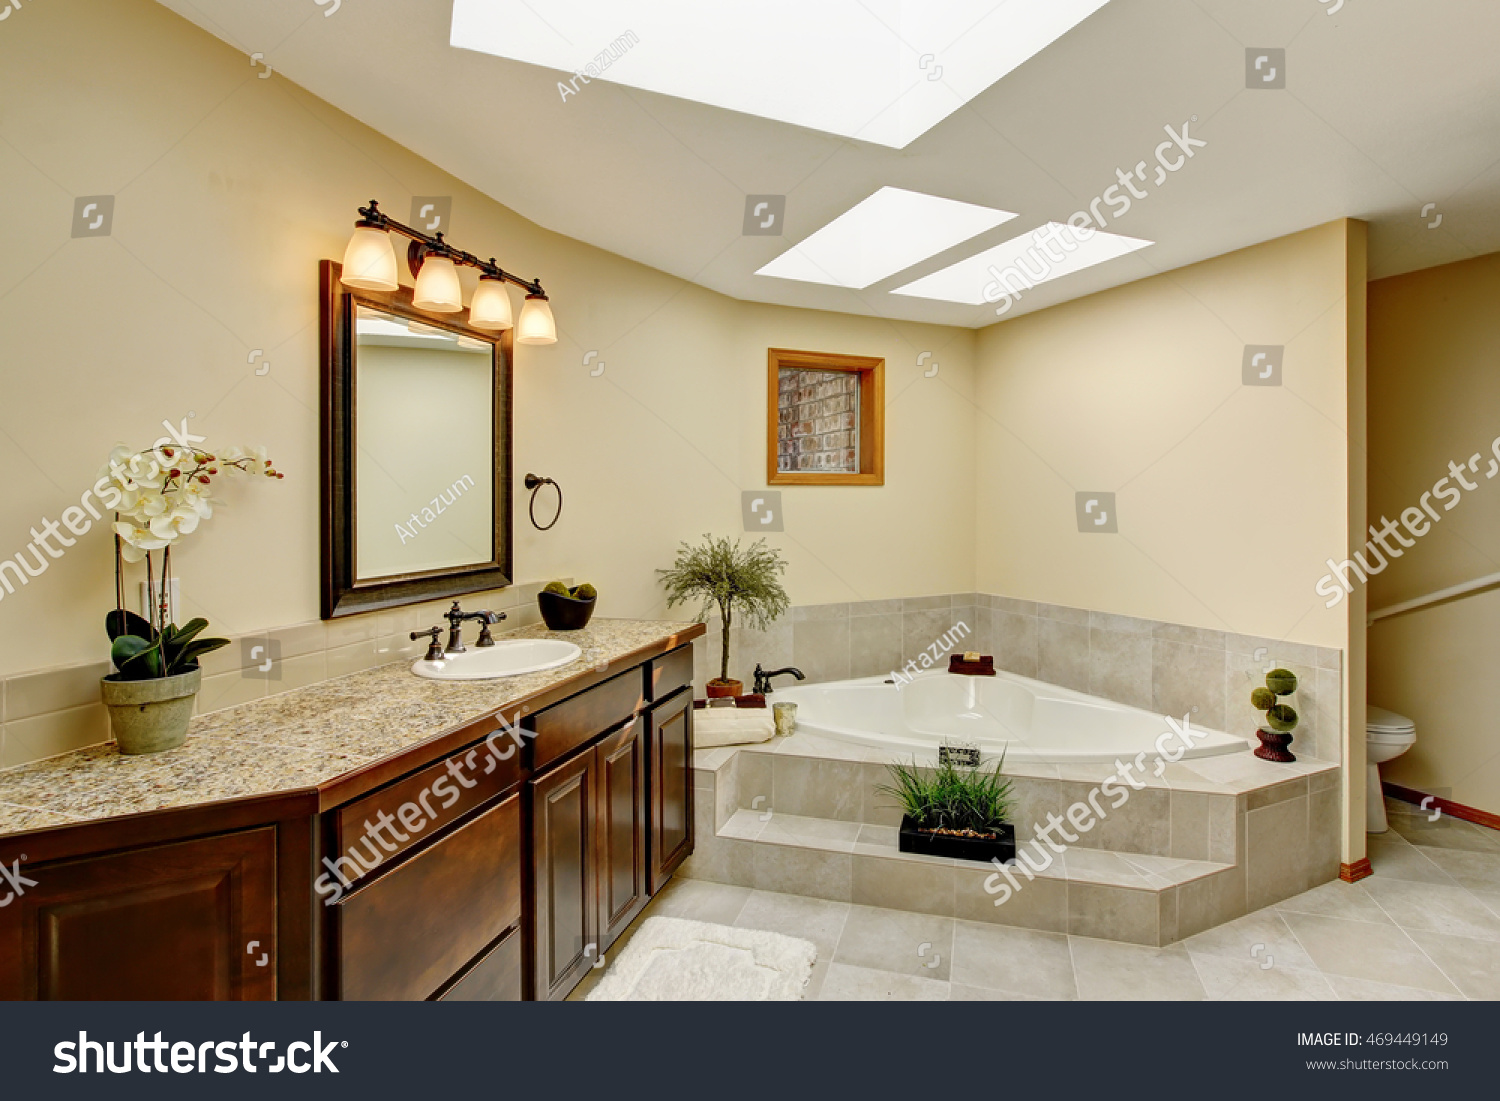 Modern bathroom with vanity cabinet with granite counter top and ...